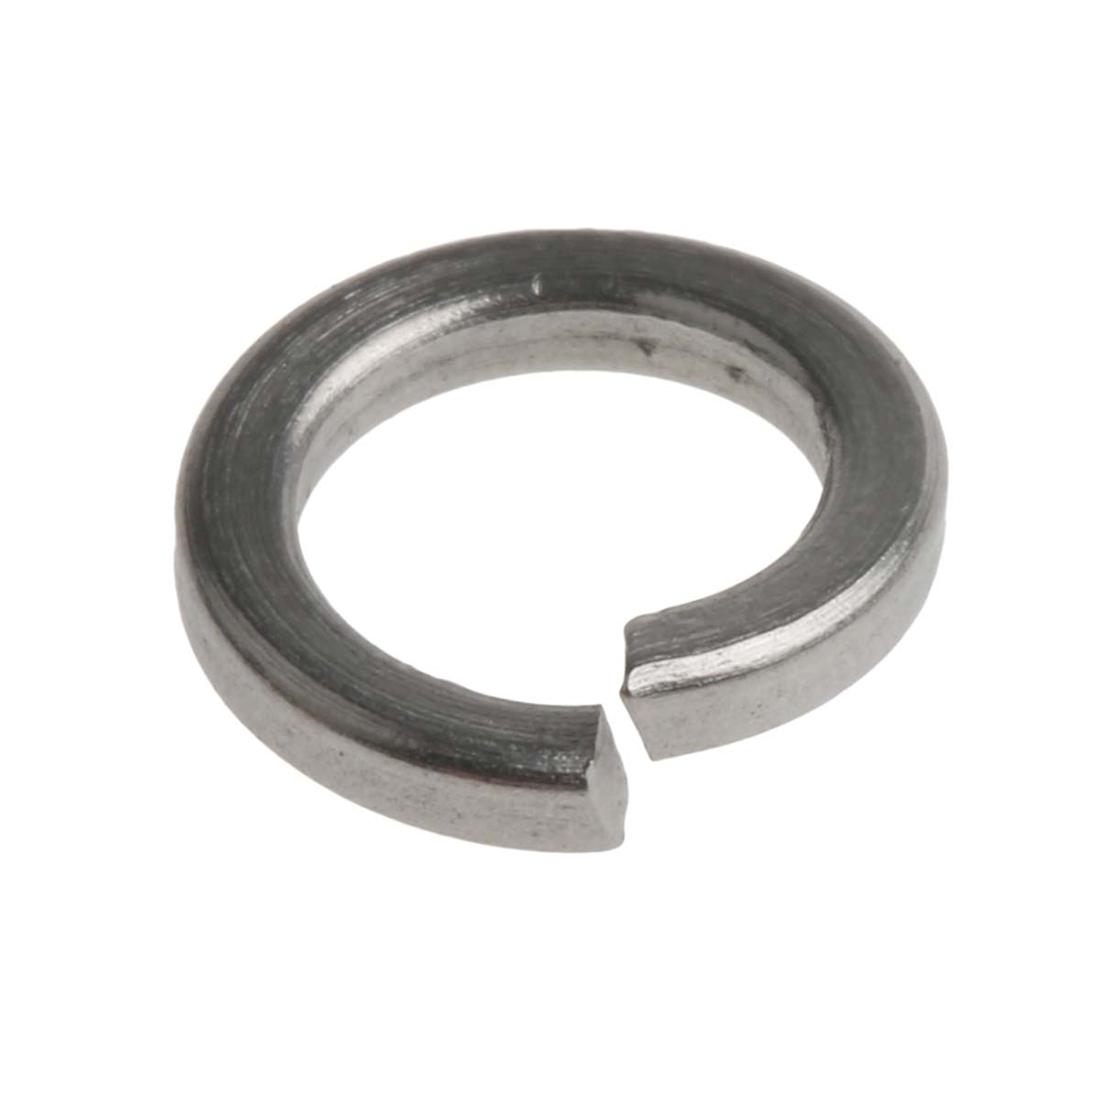 A4 stainless steel spring washer,M6 - 100 Pack